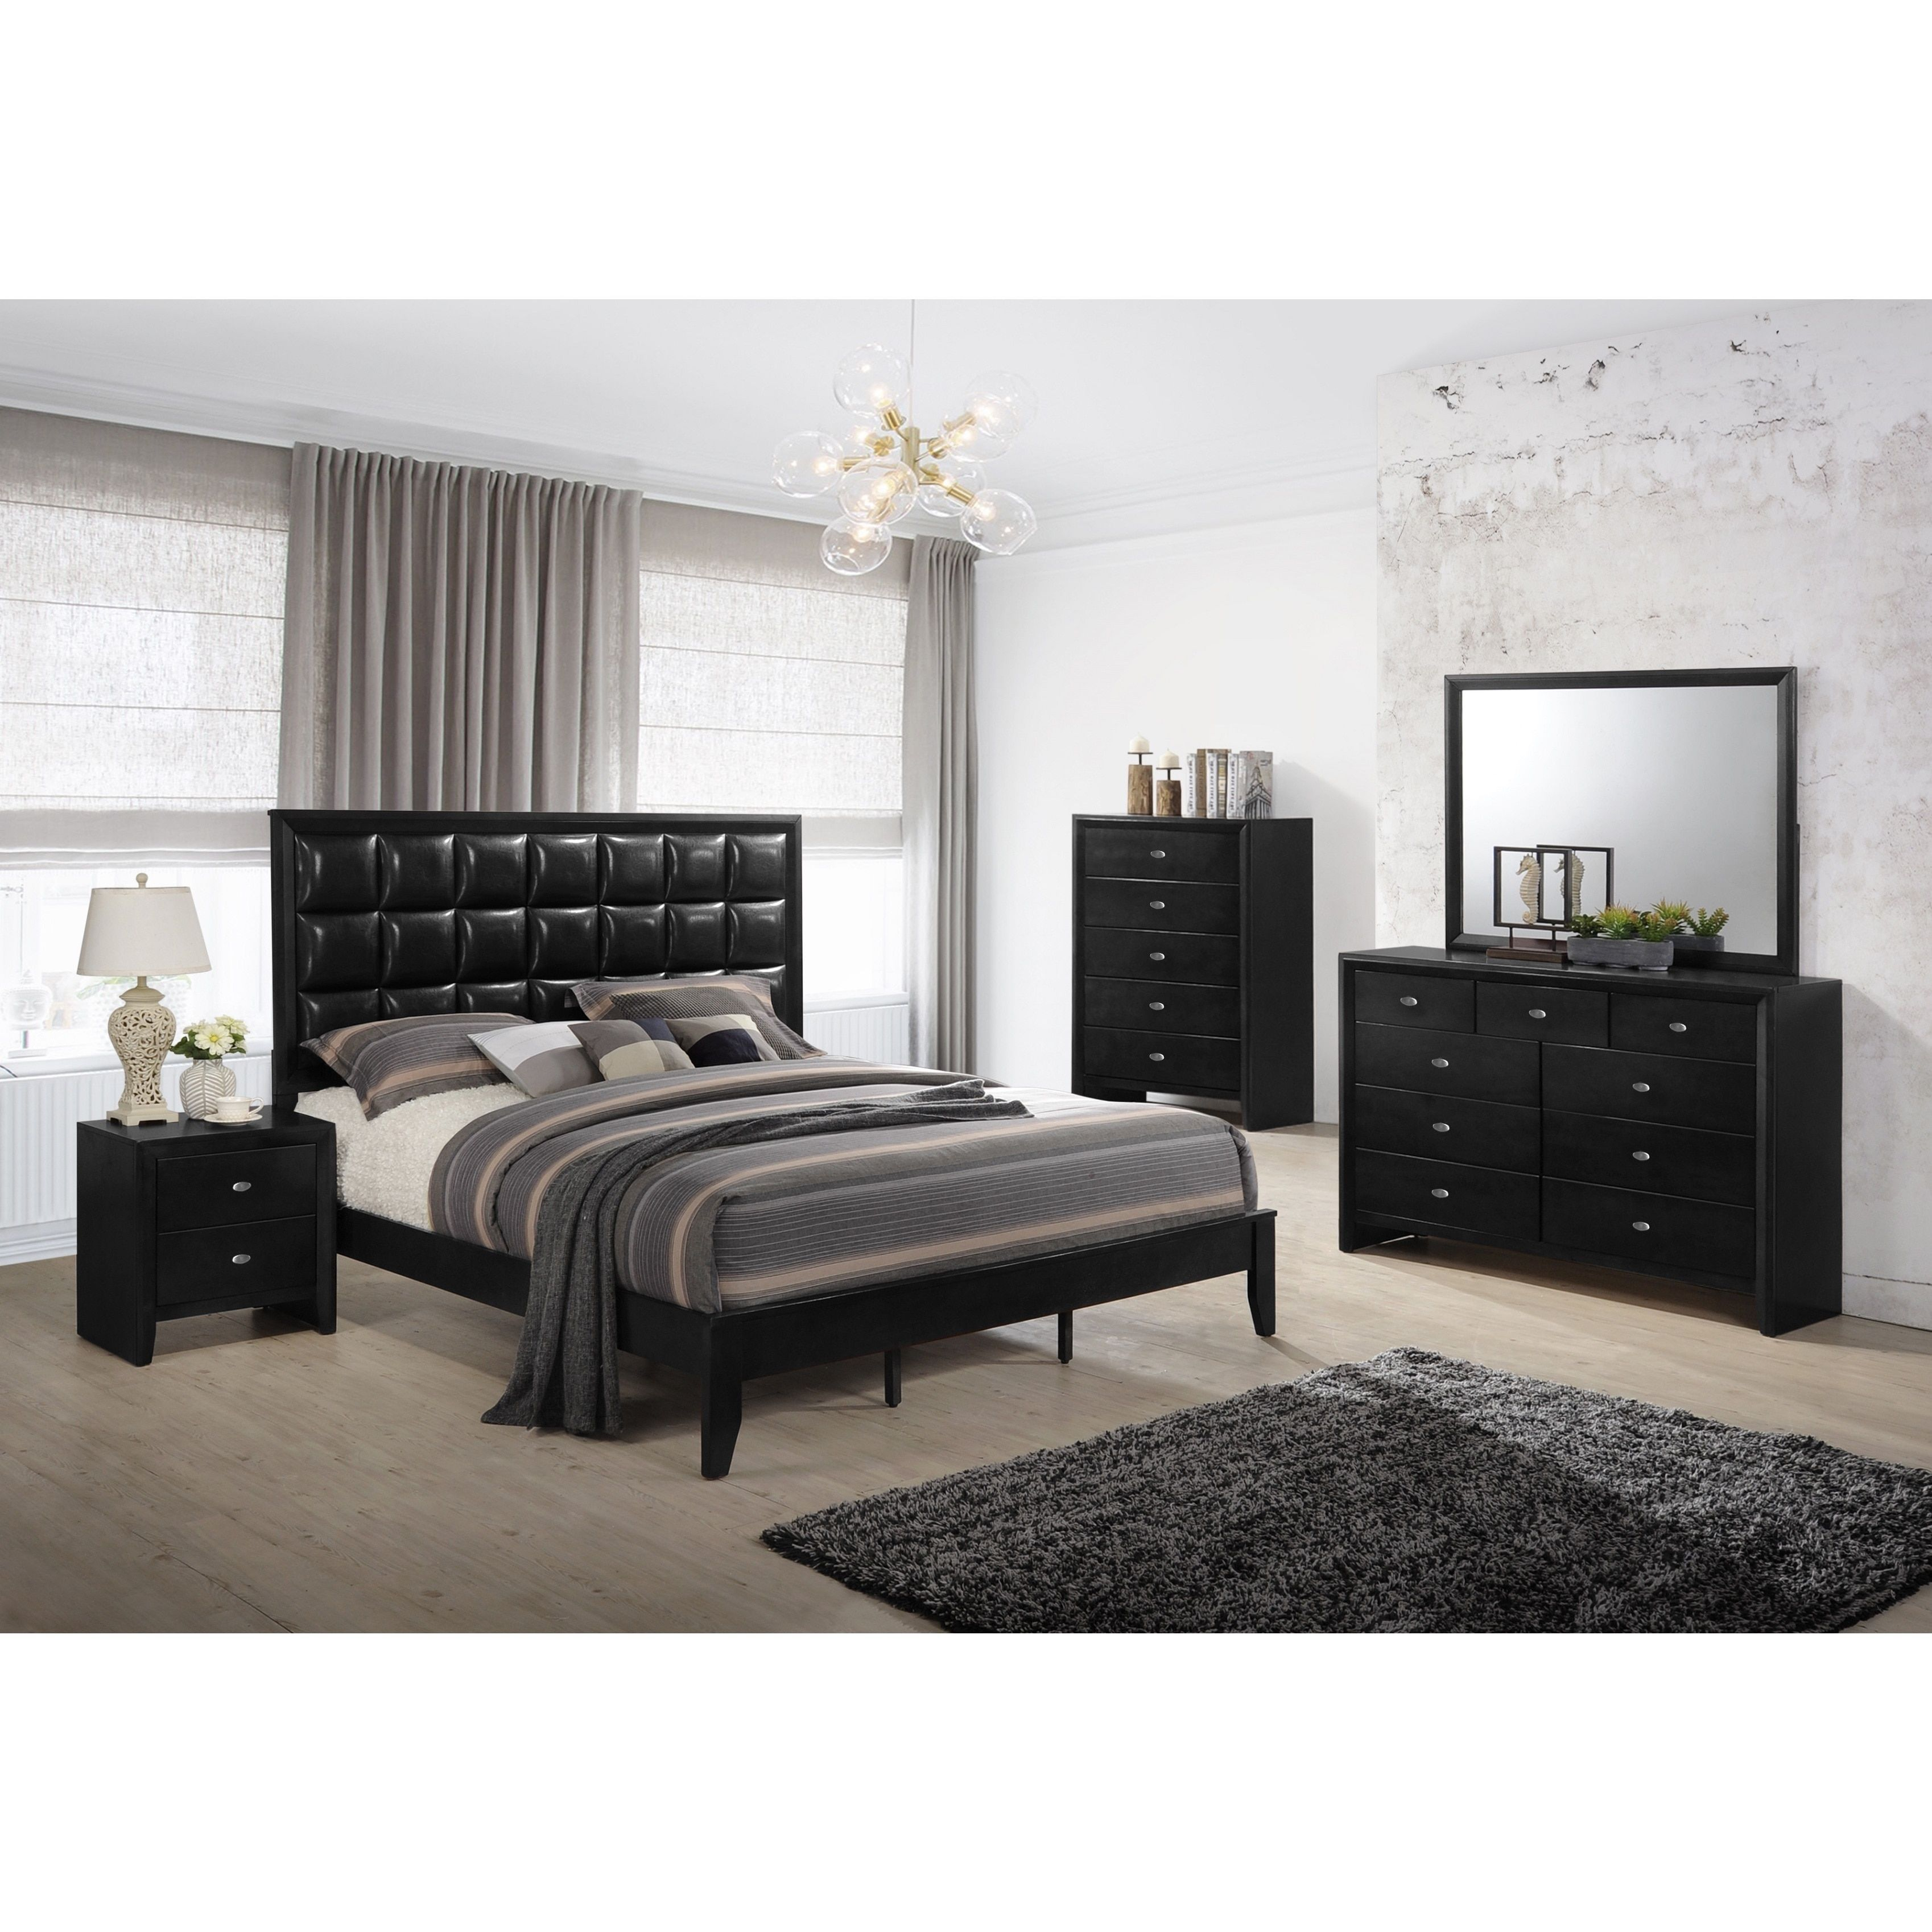 Gloria black finish wood and upholstered bed room set queen bed